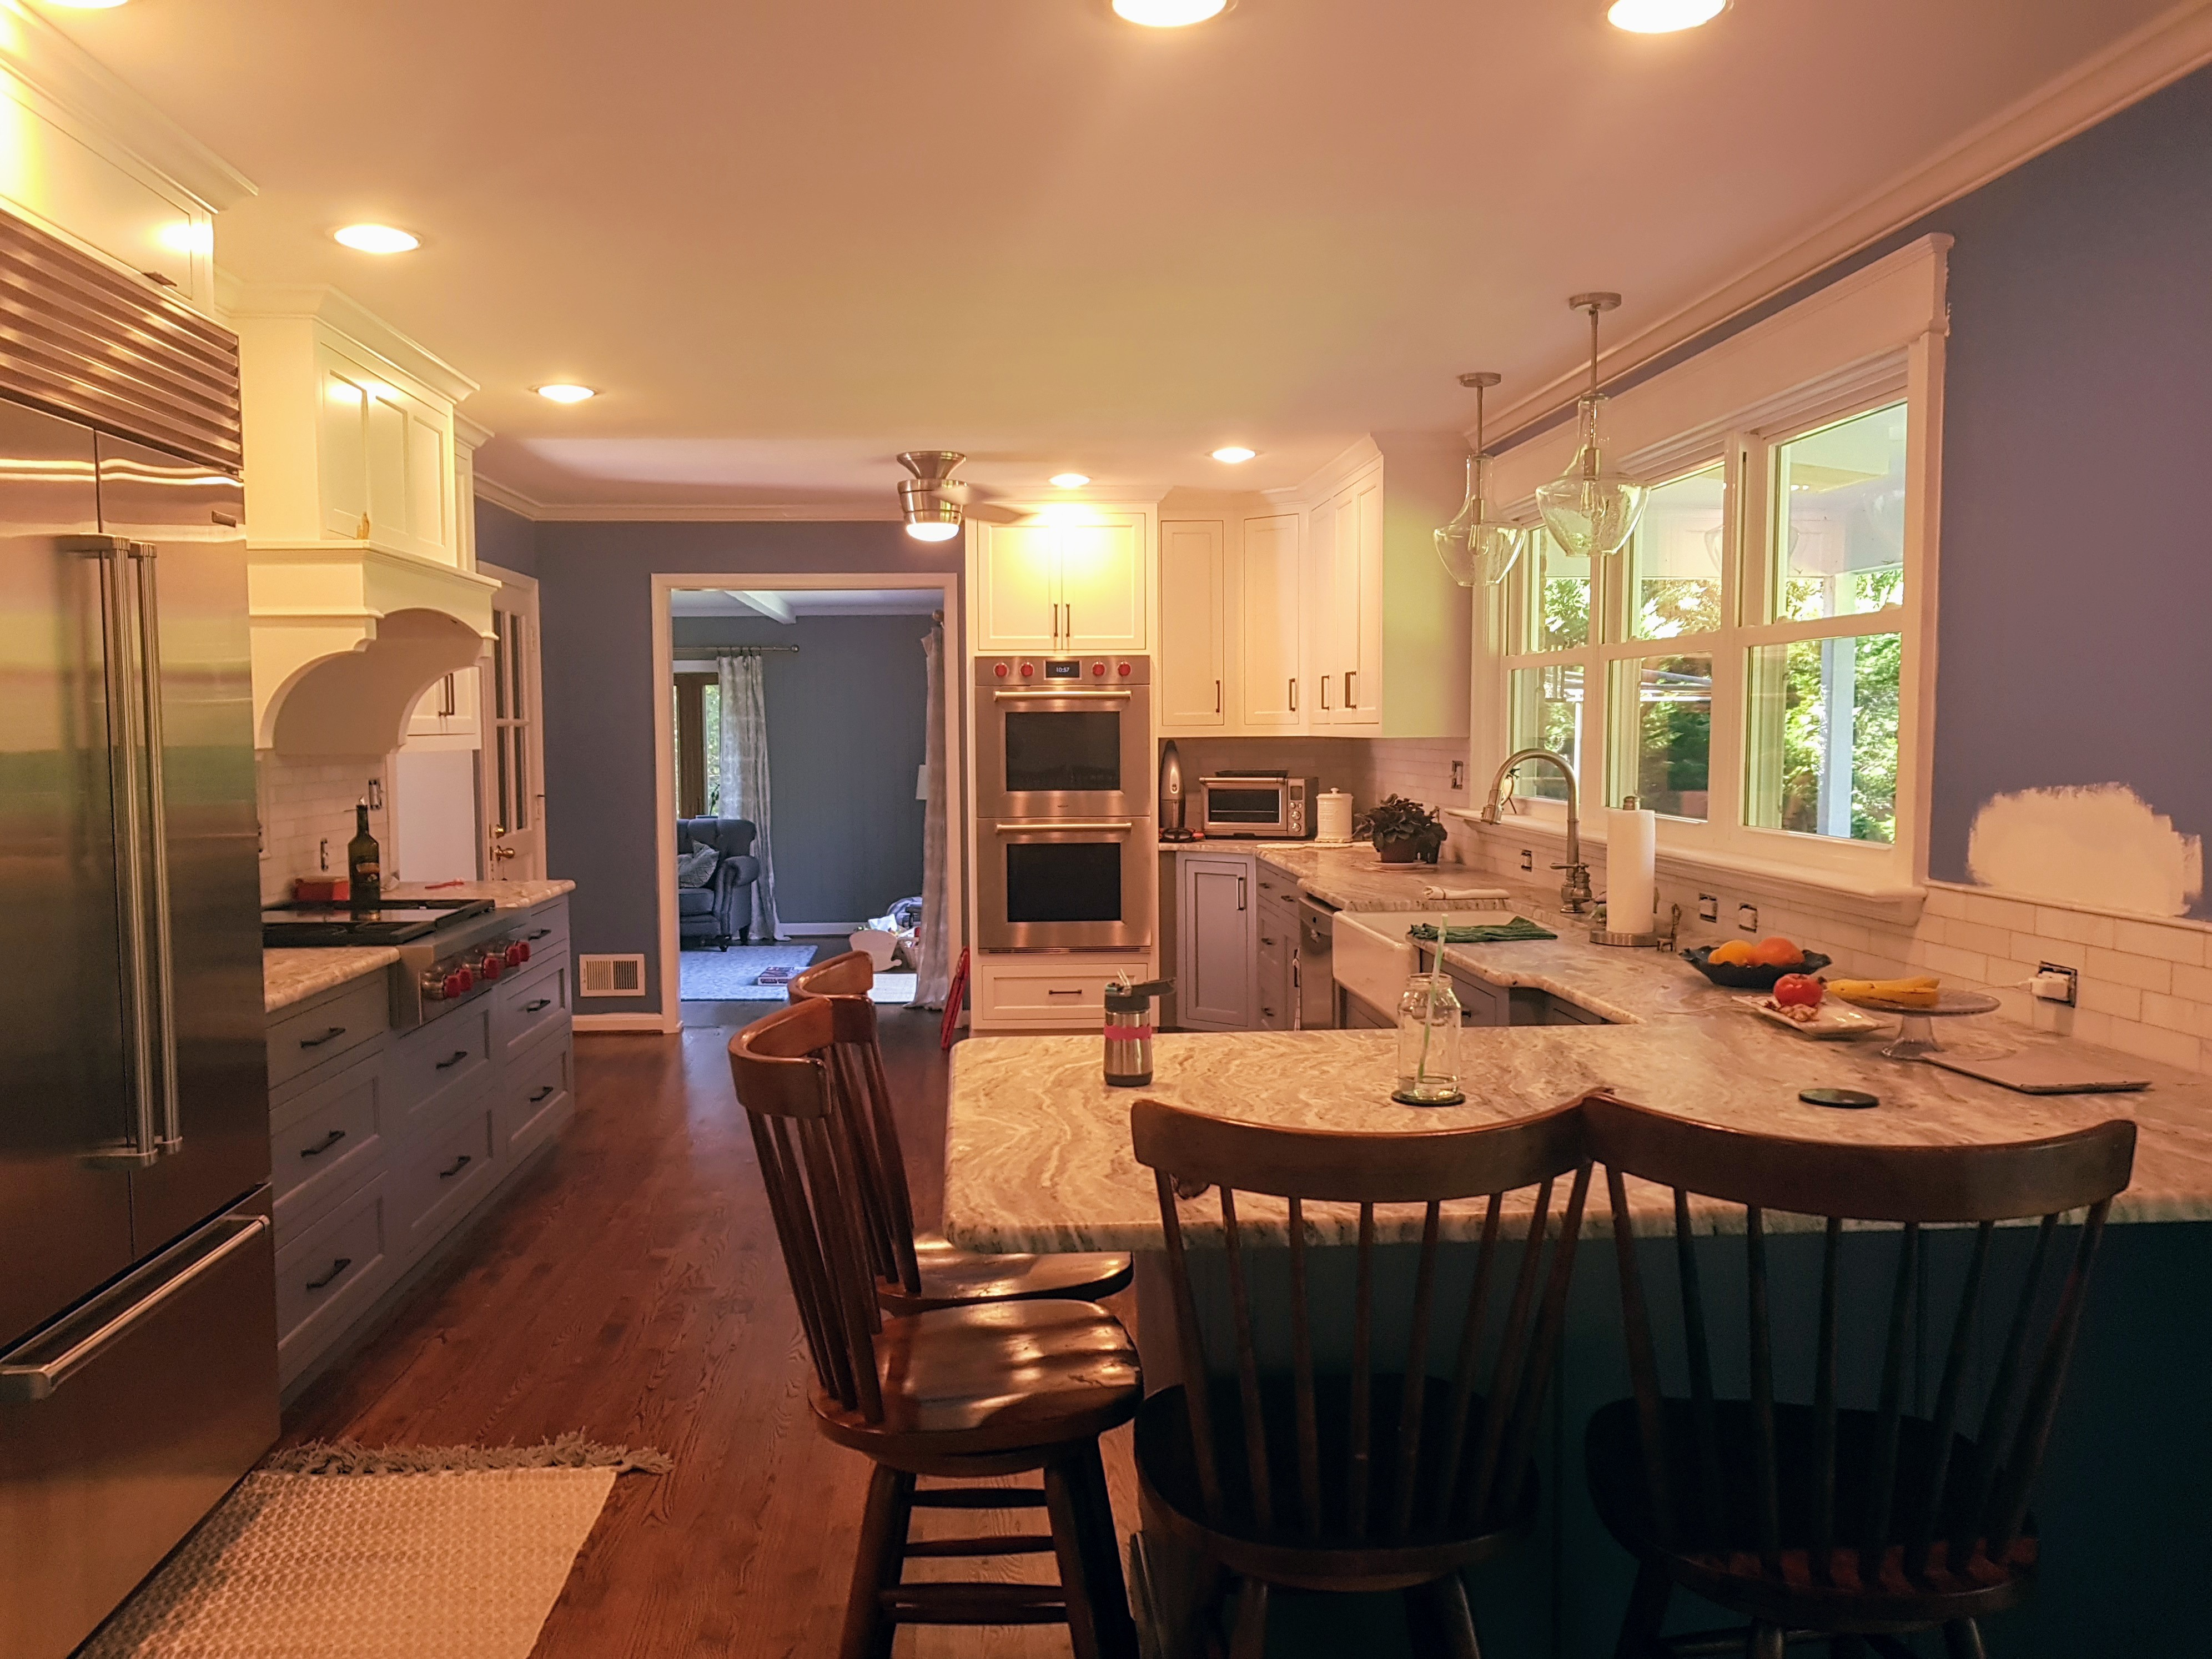 Renovated Kitchen With Recessed Lighting Installed